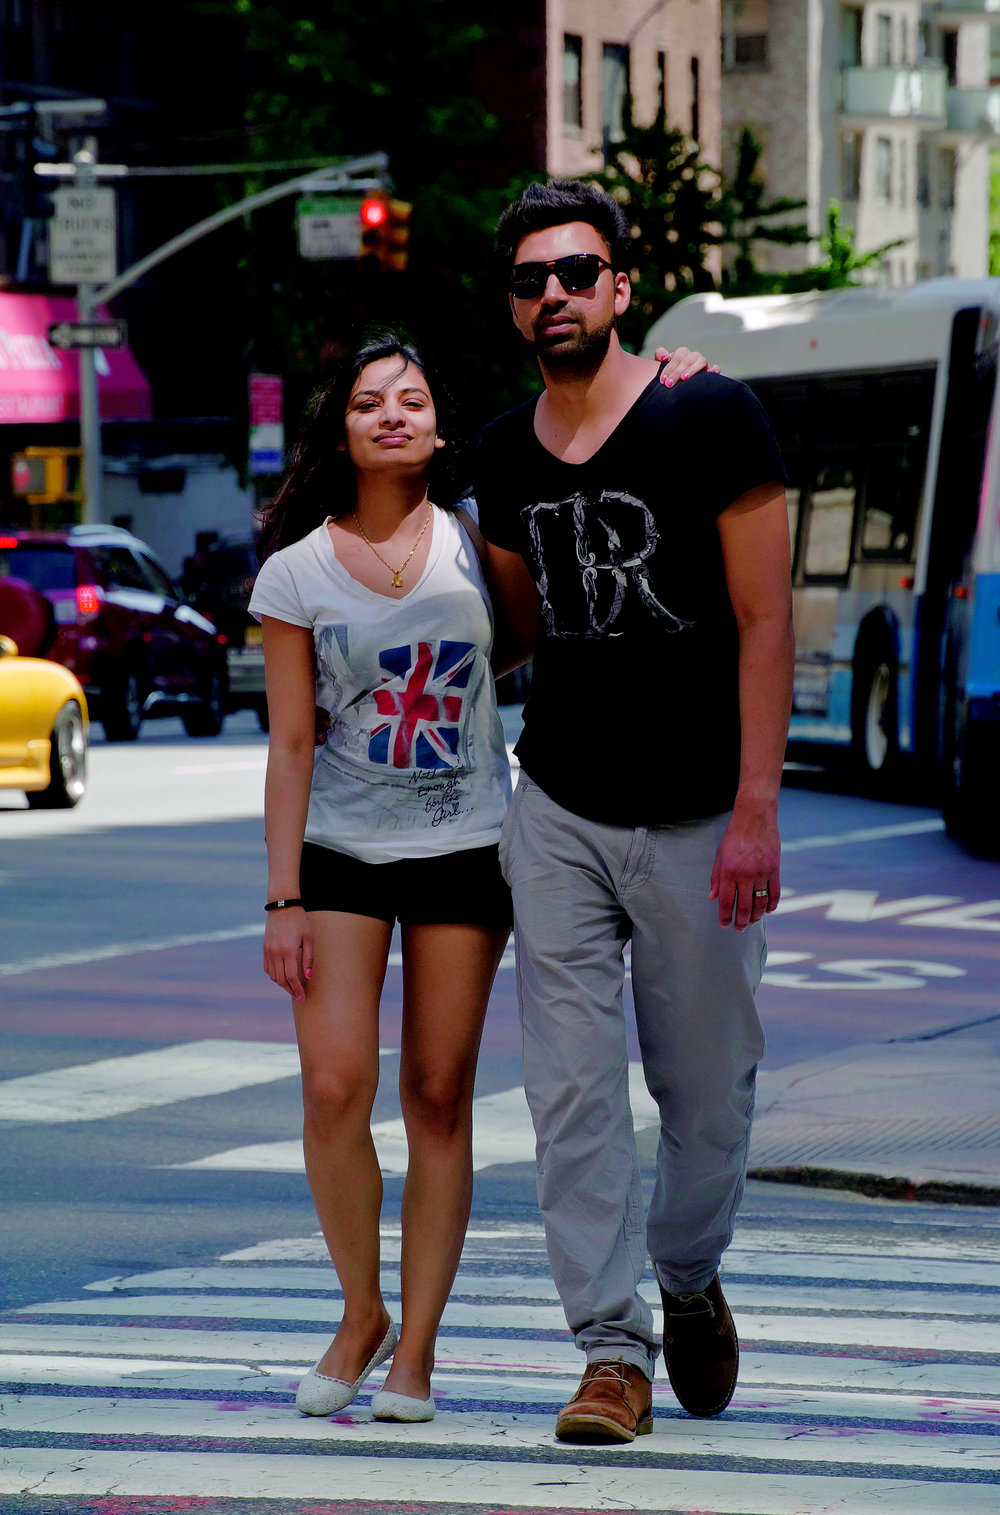 coolCoupleWalking5008.jpg